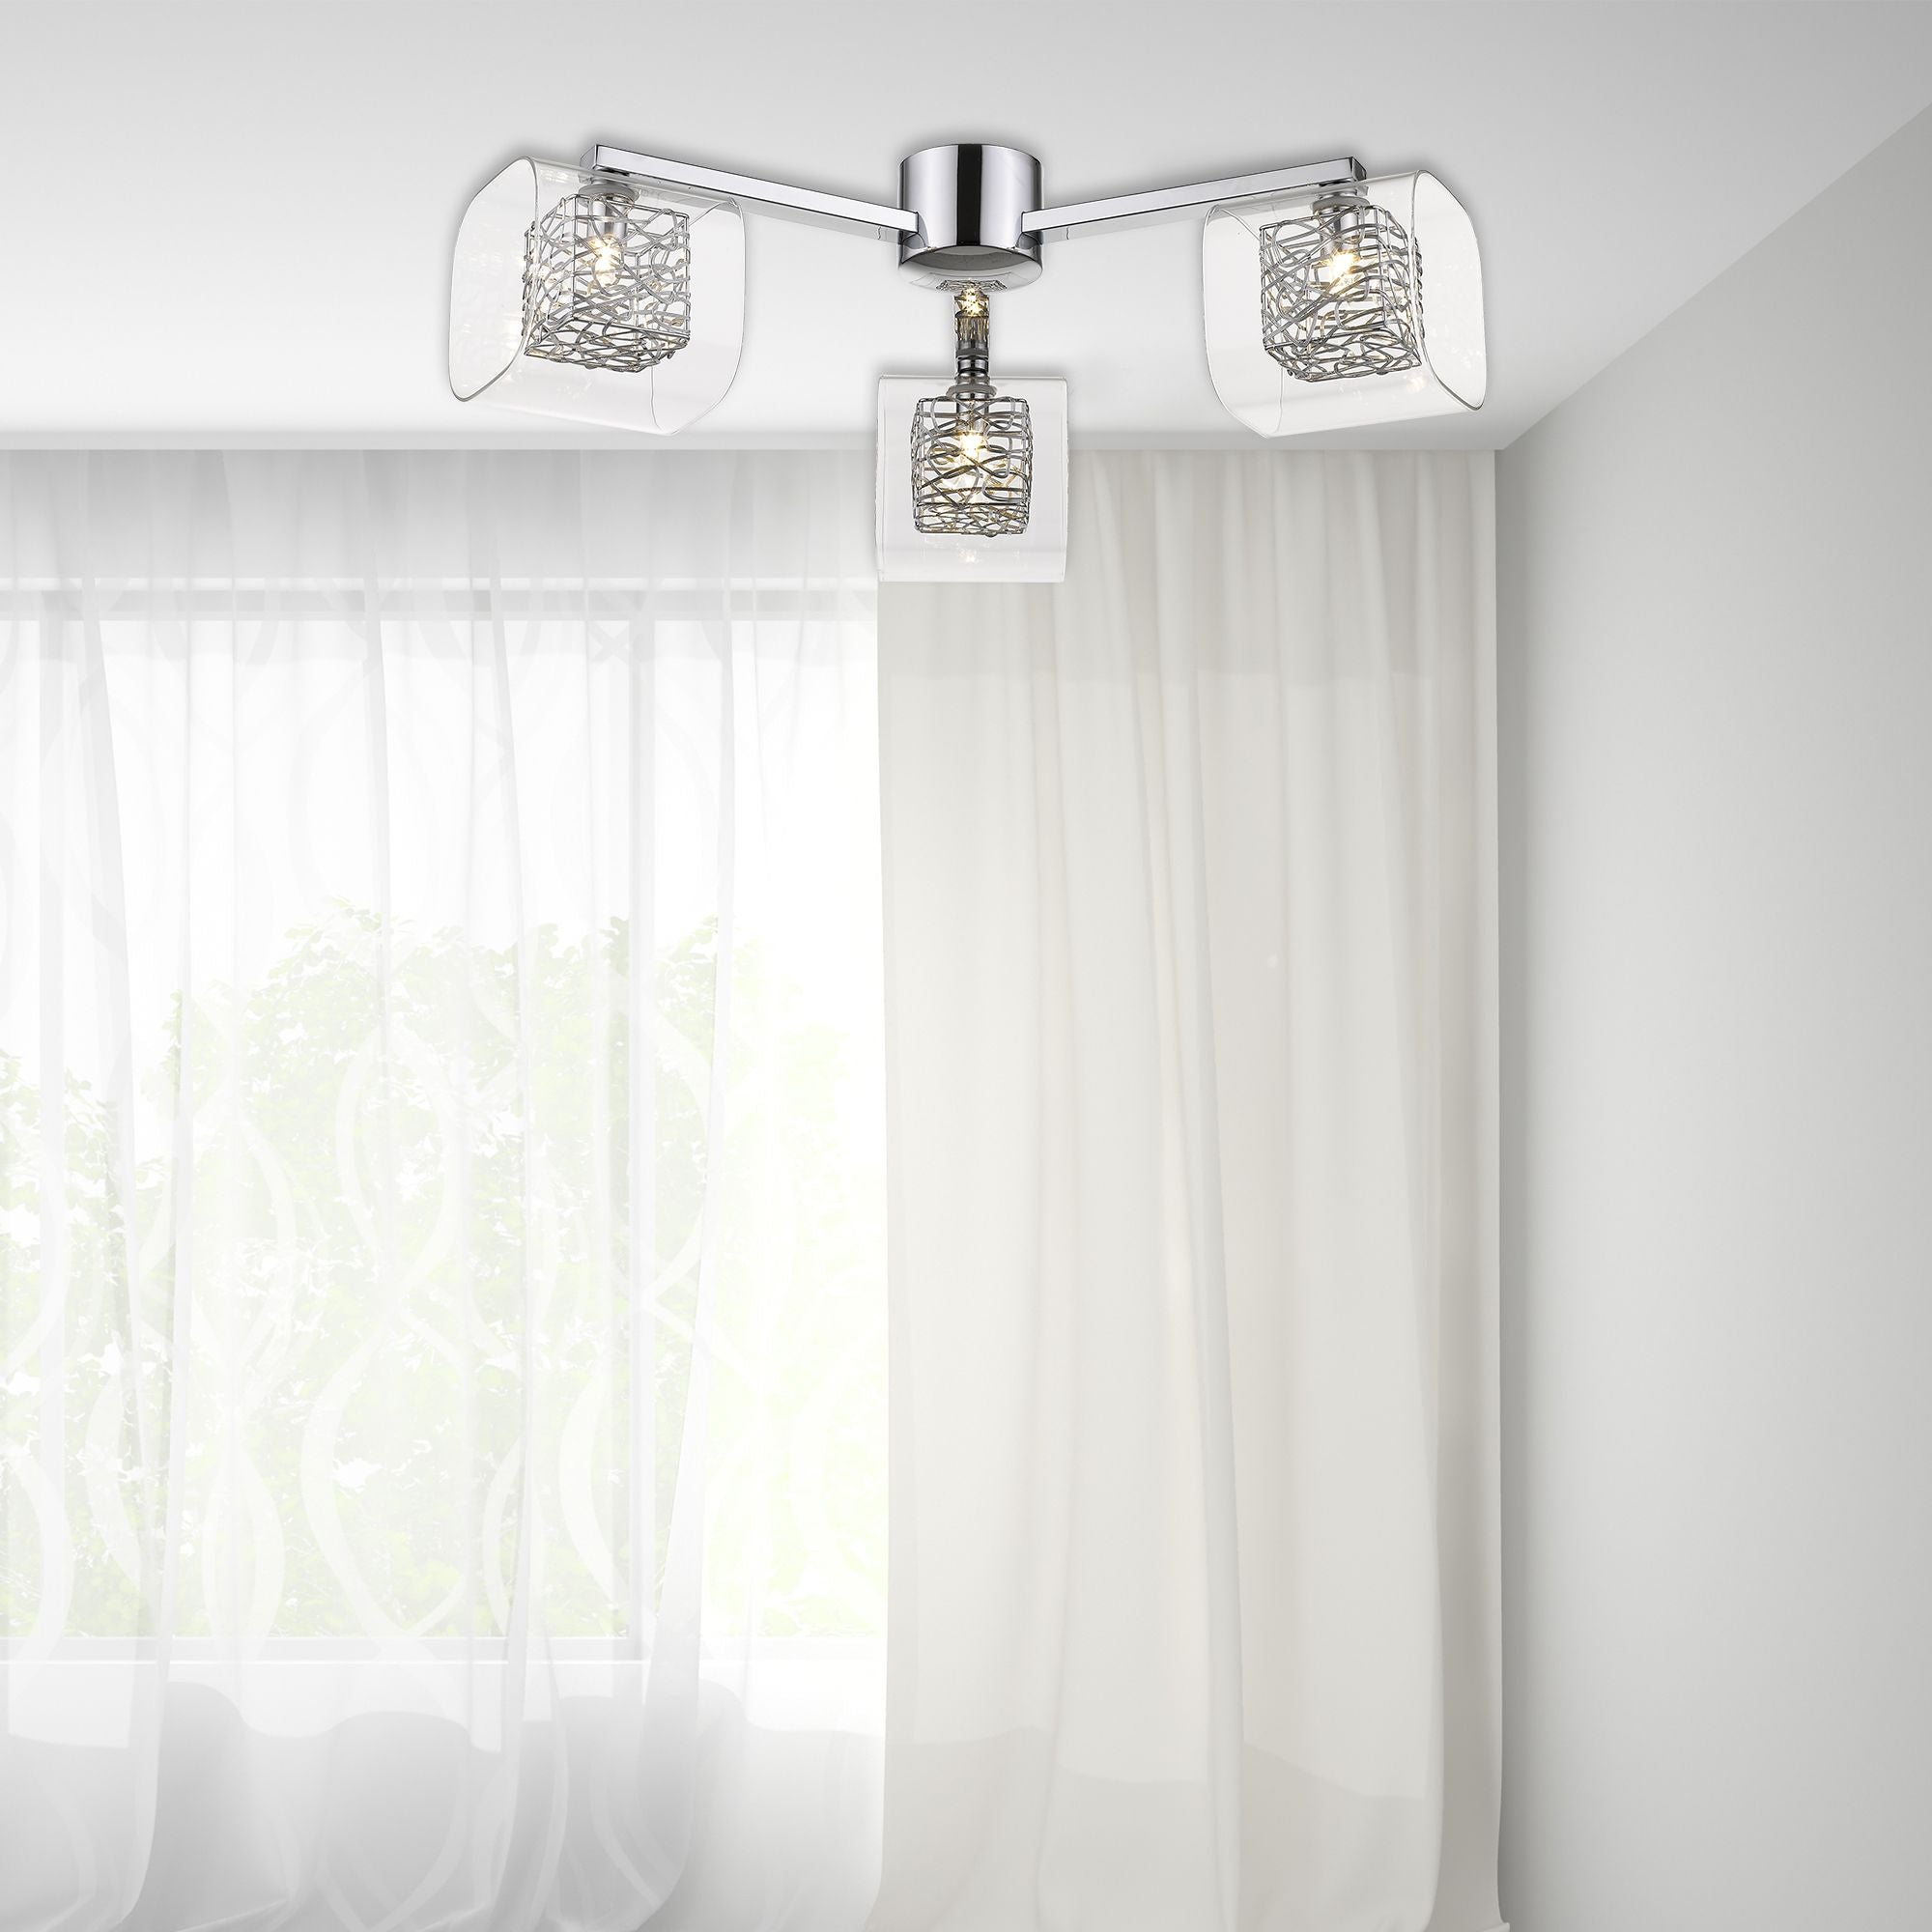 Lawson 3 Light Flush - Chrome or Copper